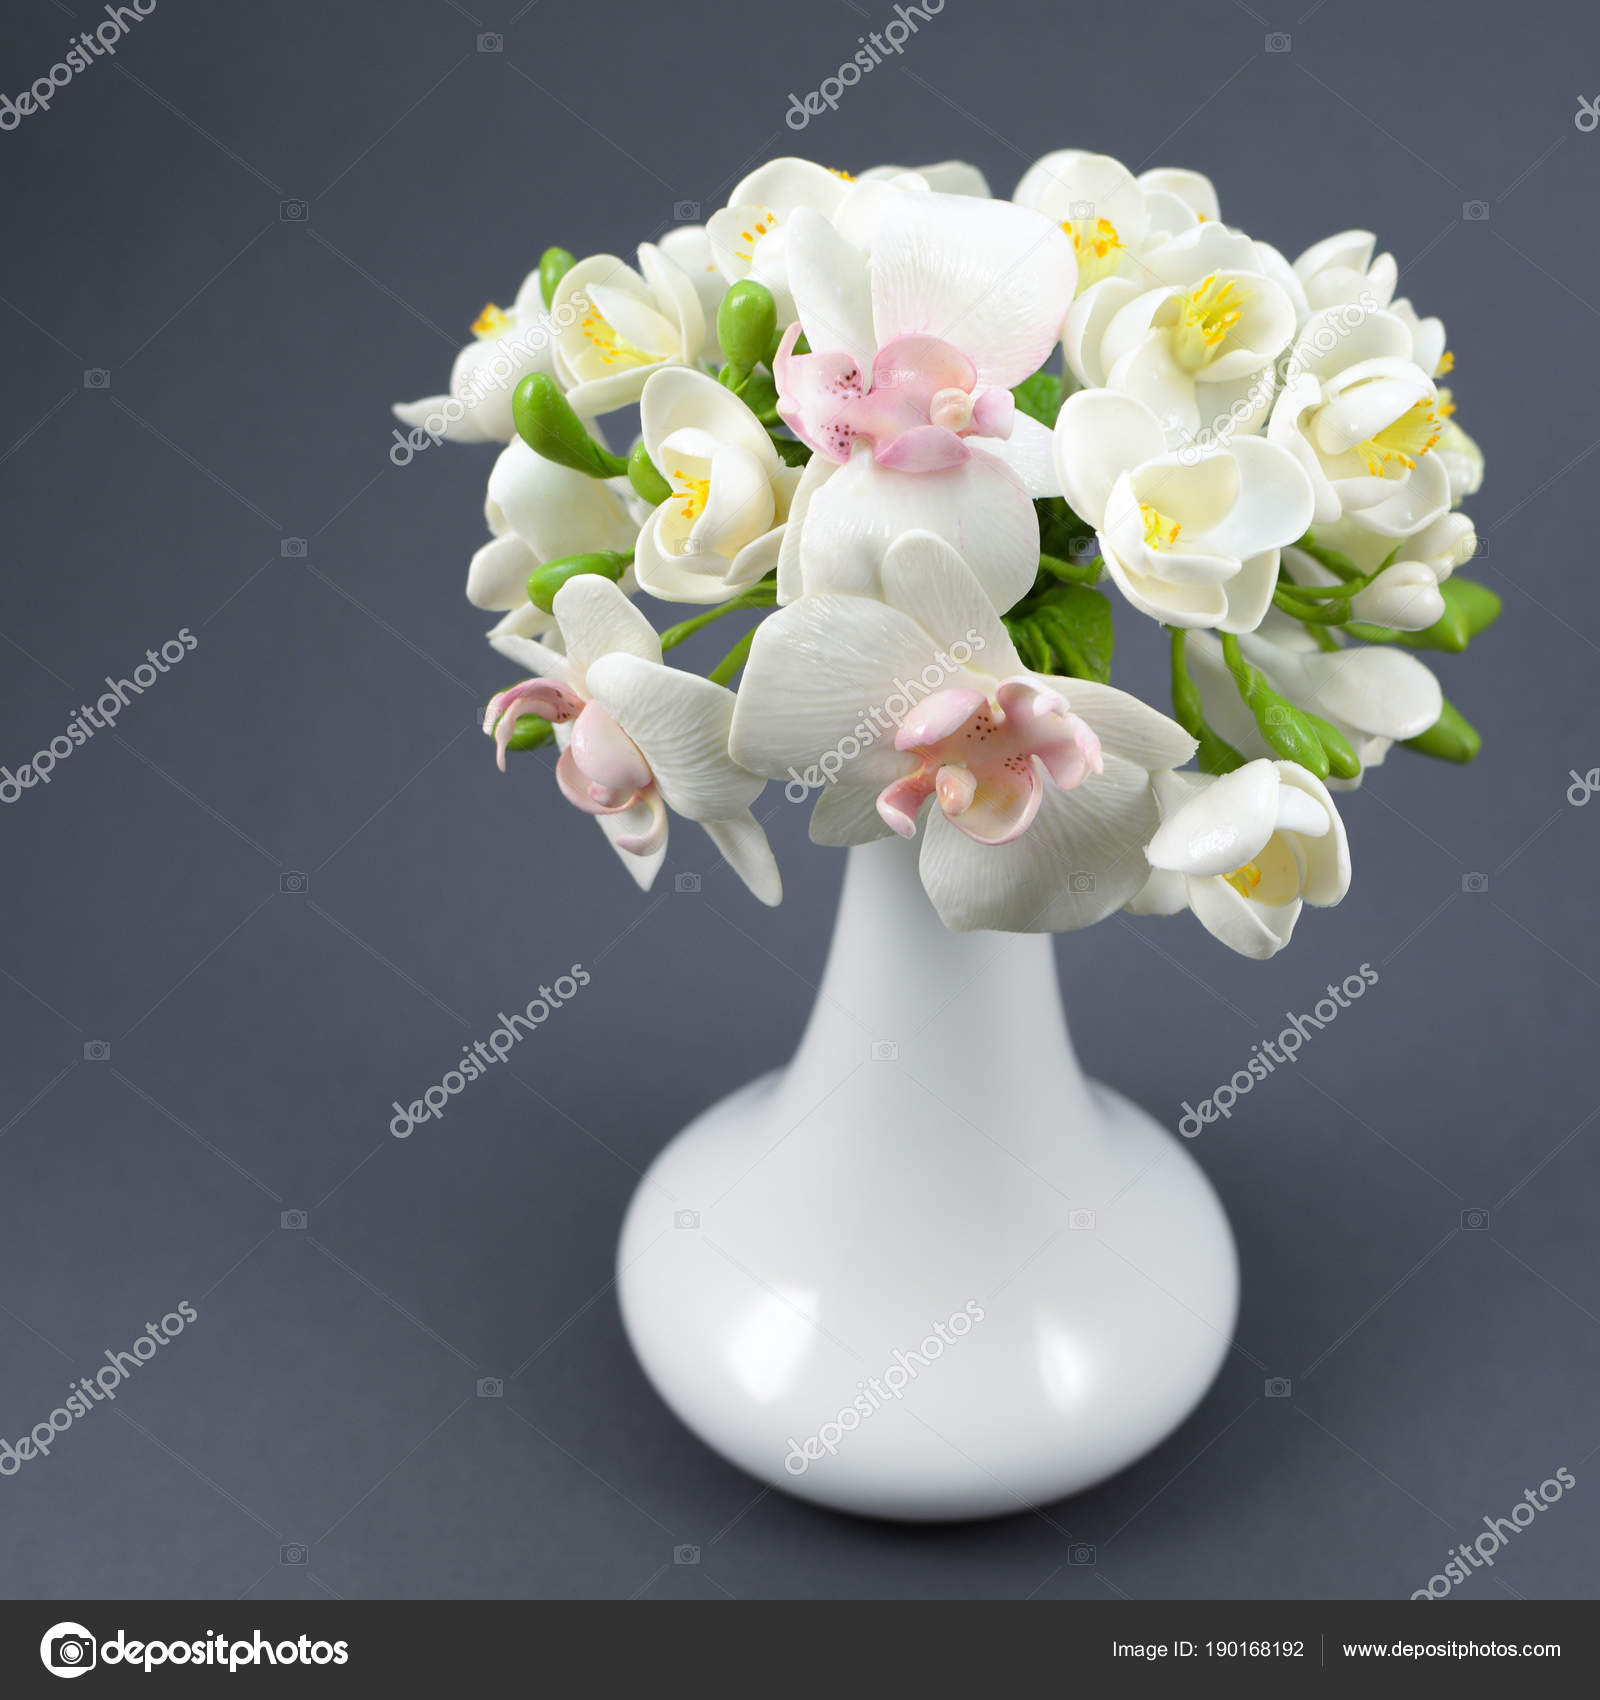 Stunning clay flower bouquet images wedding and flowers ispiration hand made polymer clay flower bouquet in a white vase on a gray izmirmasajfo Images